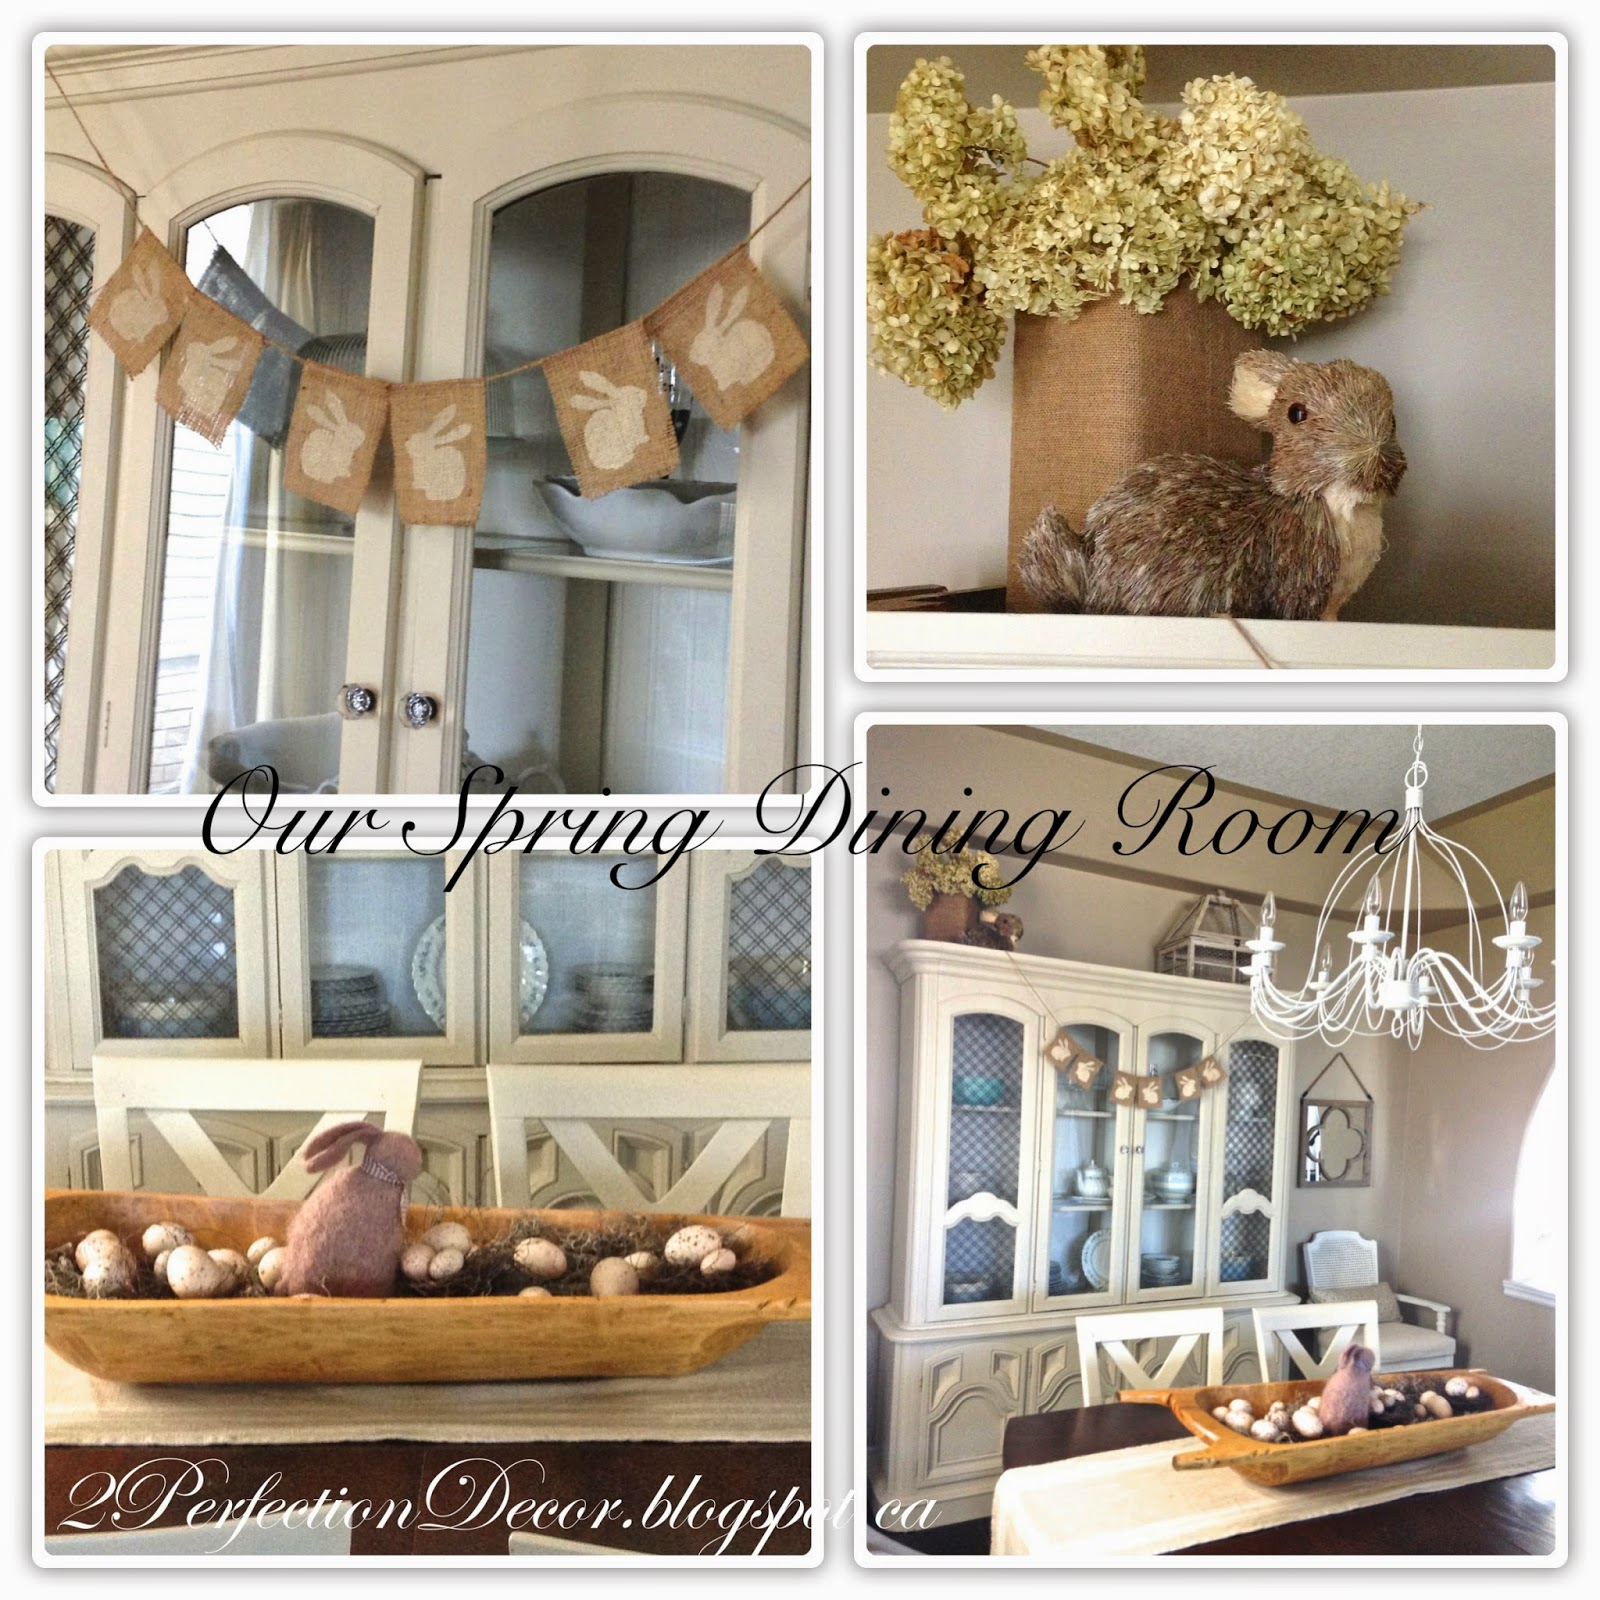 On Top Of Our Dining Hutch I Placed A Bunny With Burlap Vase Full Dried Hydrangeas